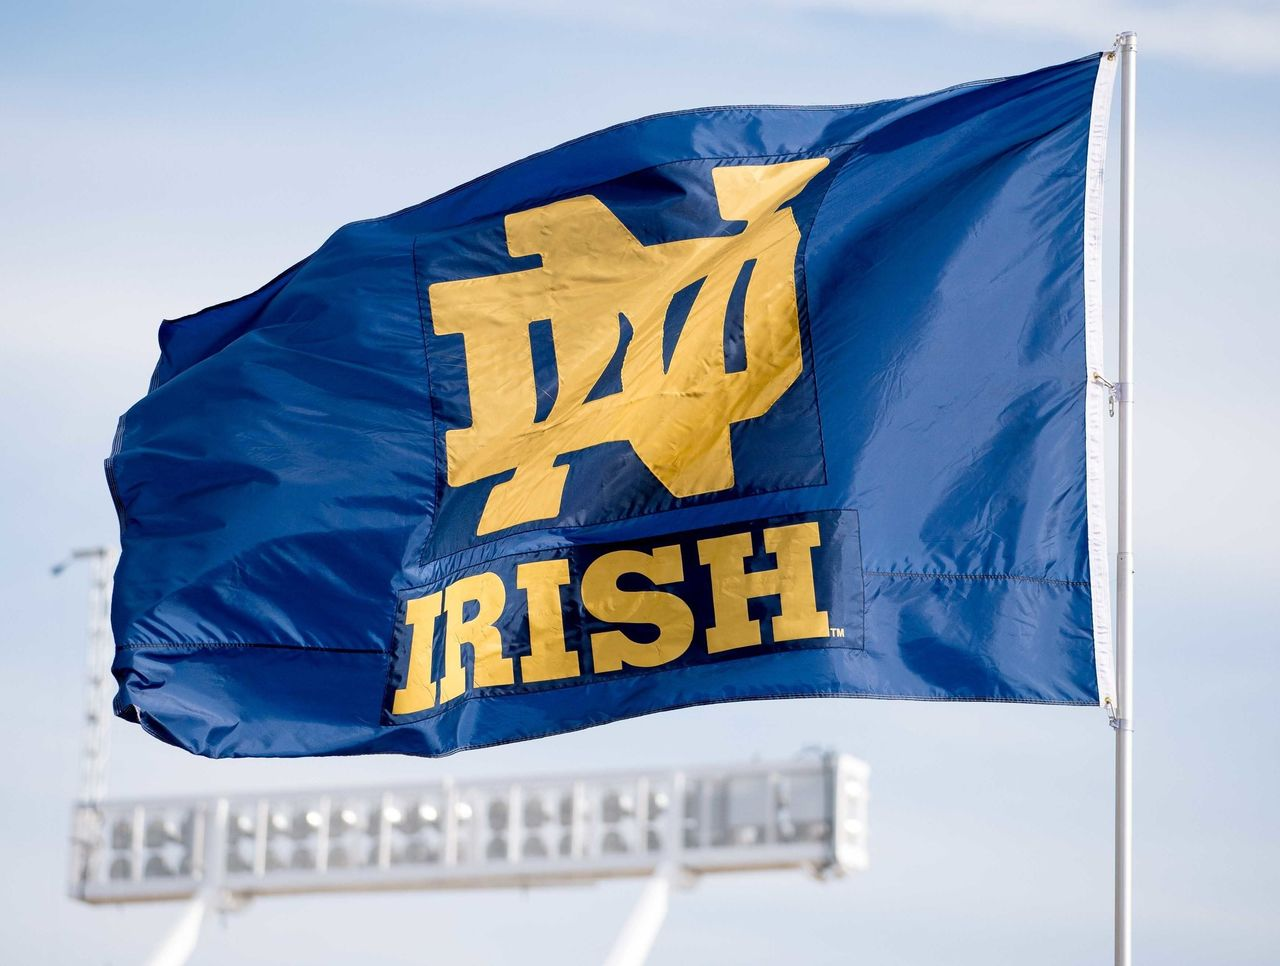 Former player suing Notre Dame for negligence leading to